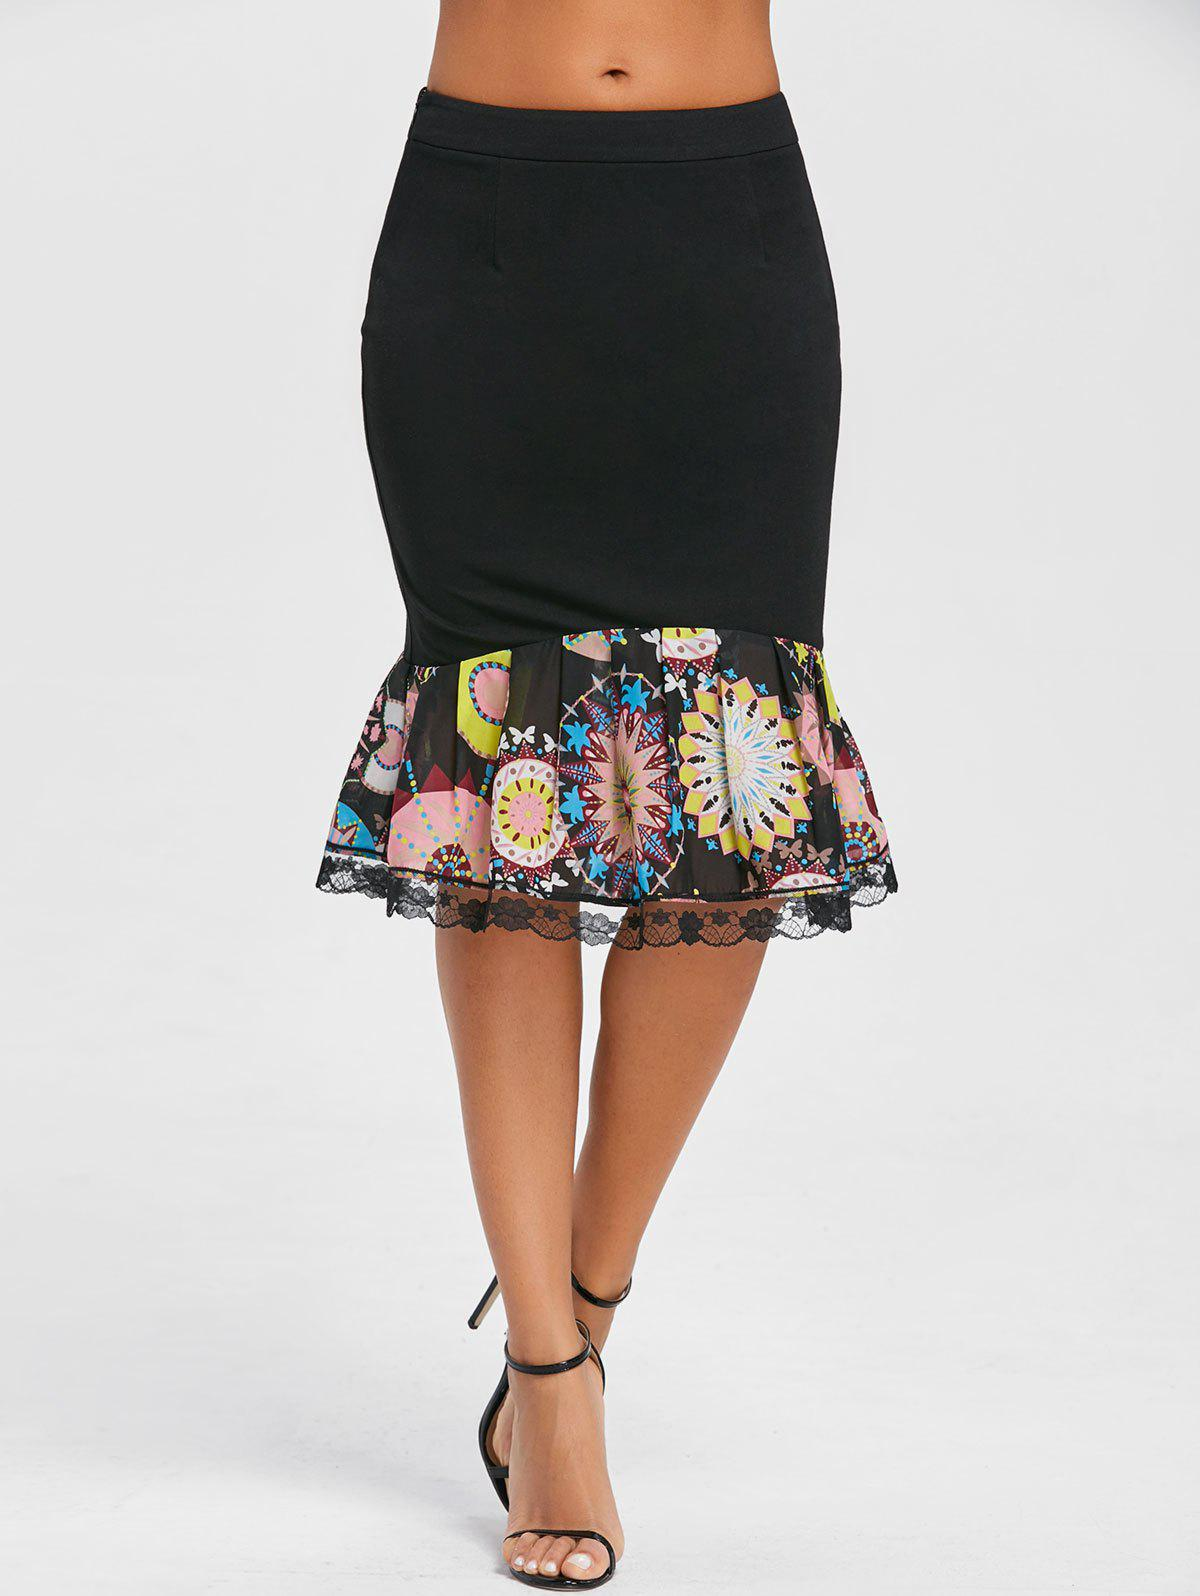 Print Trimmed Bodycon Mermaid Skirt - BLACK 2XL